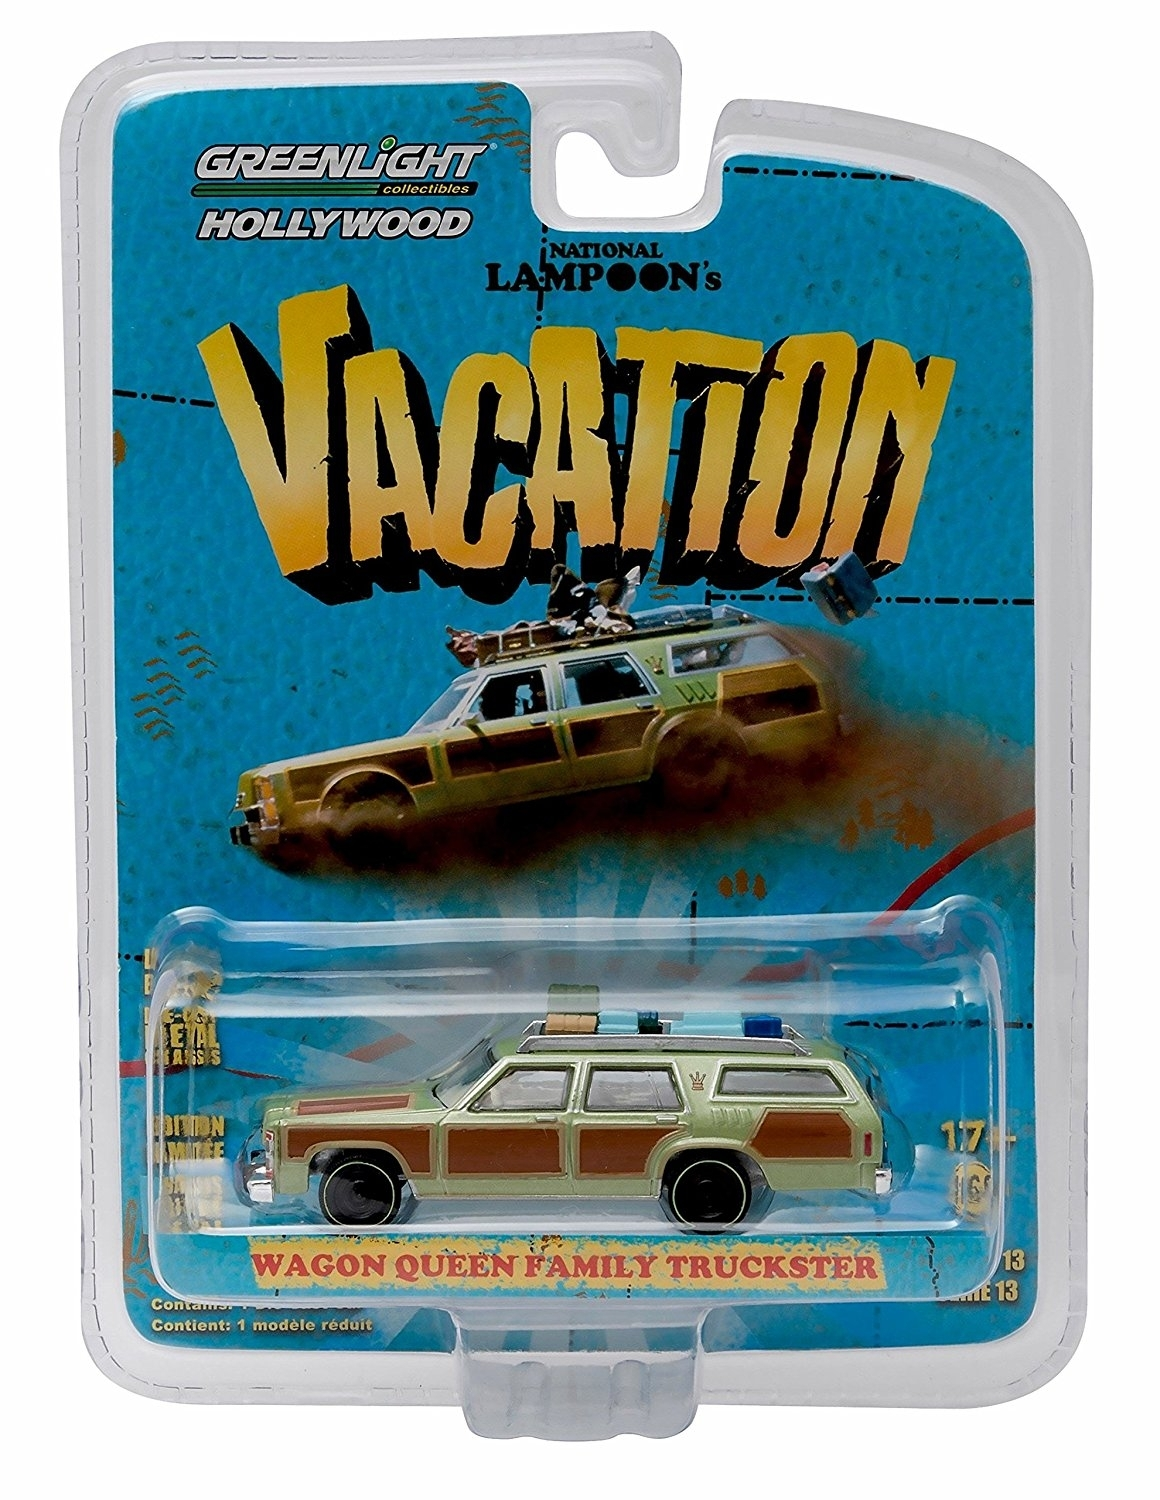 Wagon Queen Family Truckster Vacation Lampoons 1:64 série 13 Hollywood Greenlight